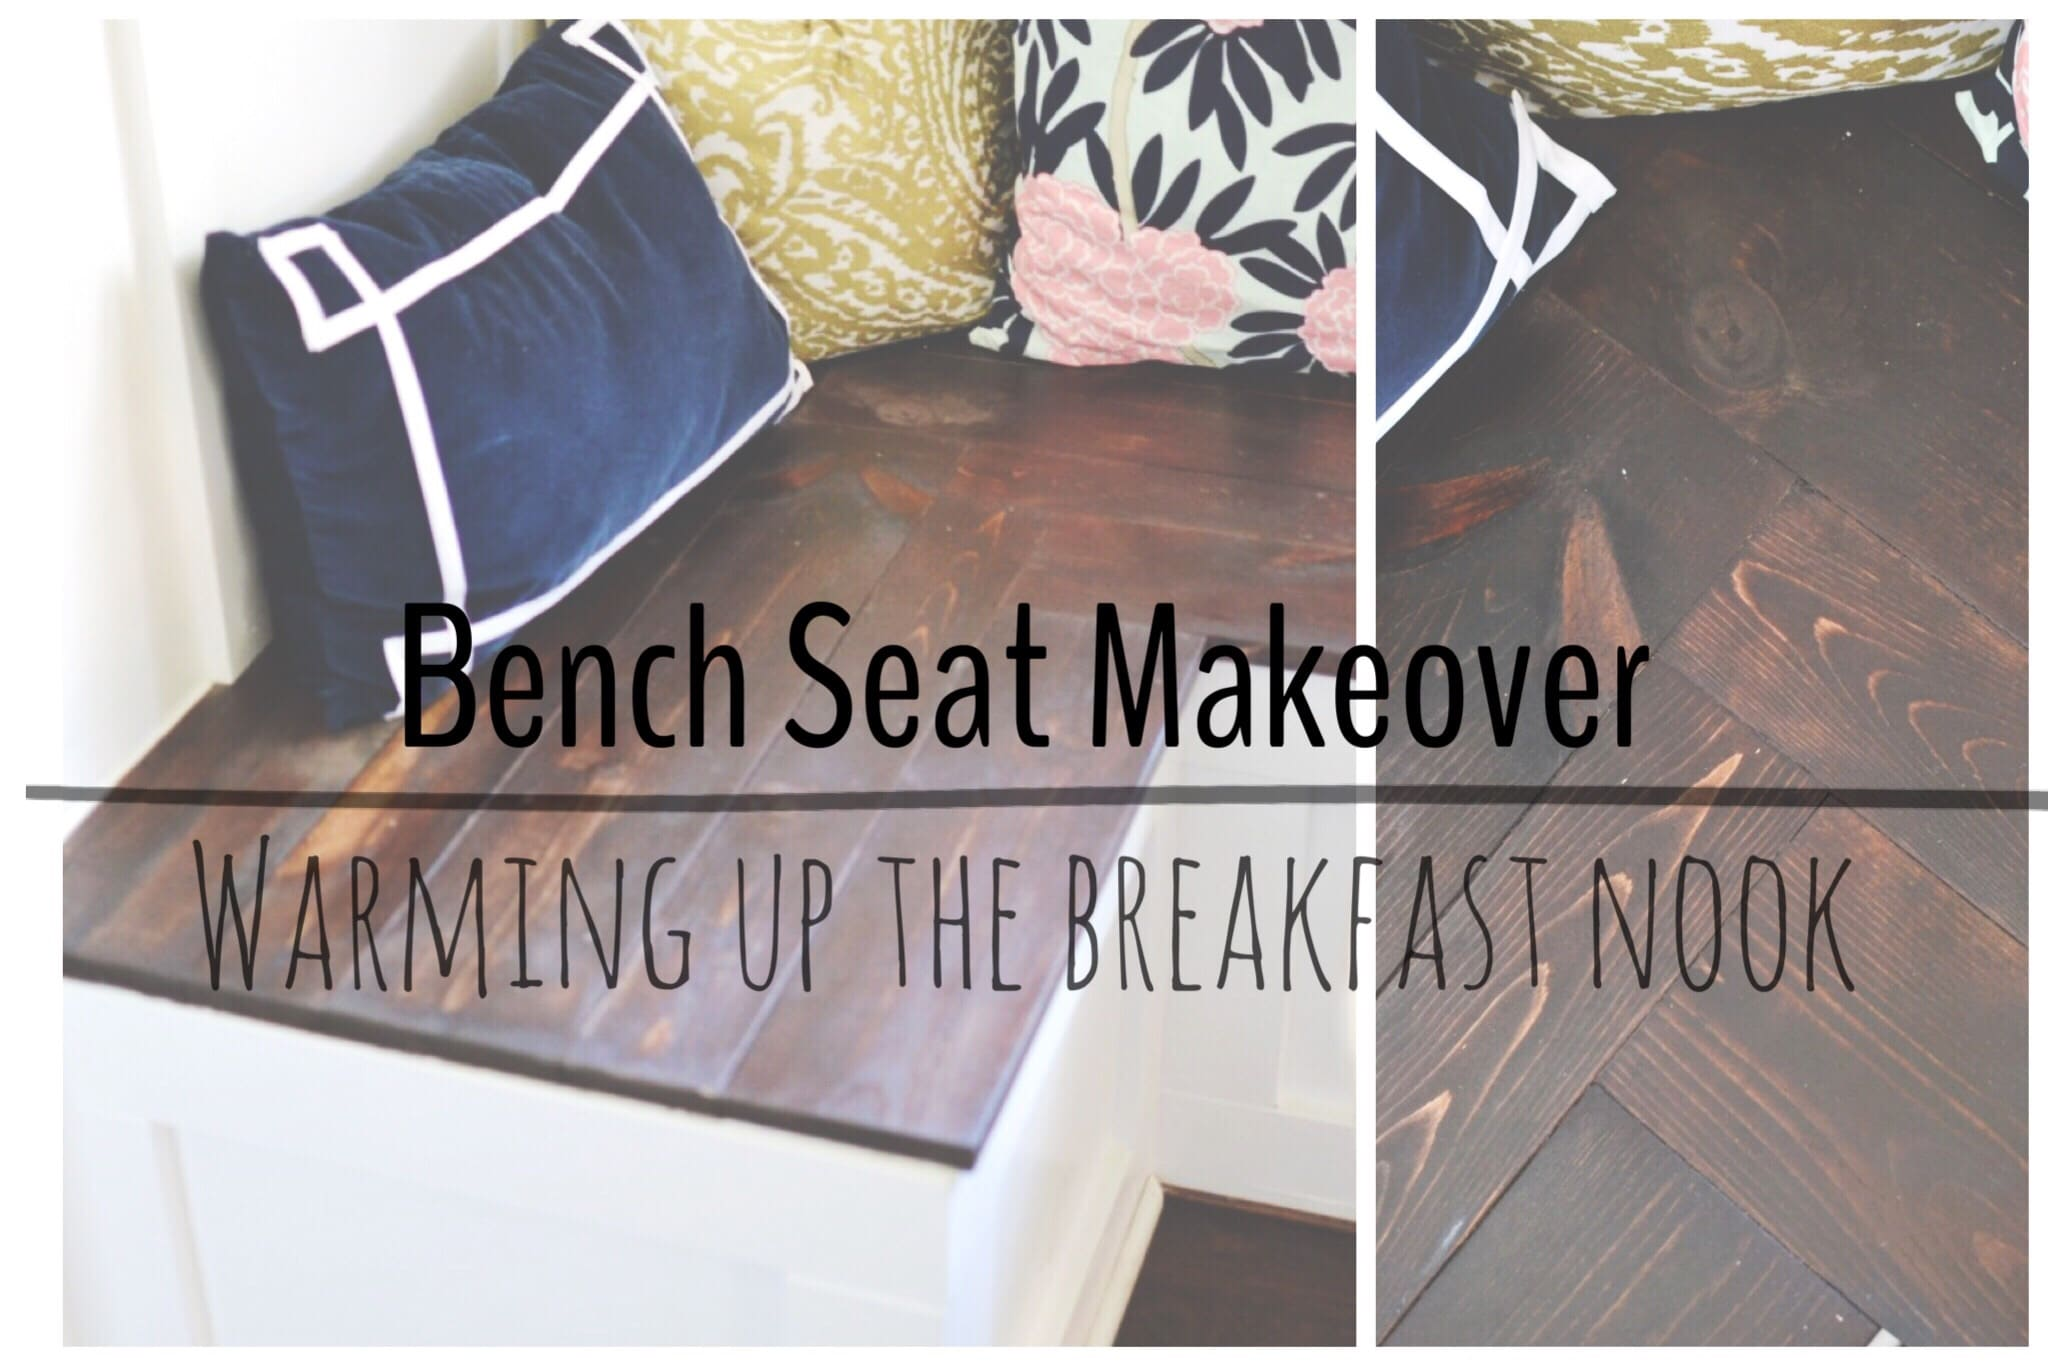 Bench Seat Makeover